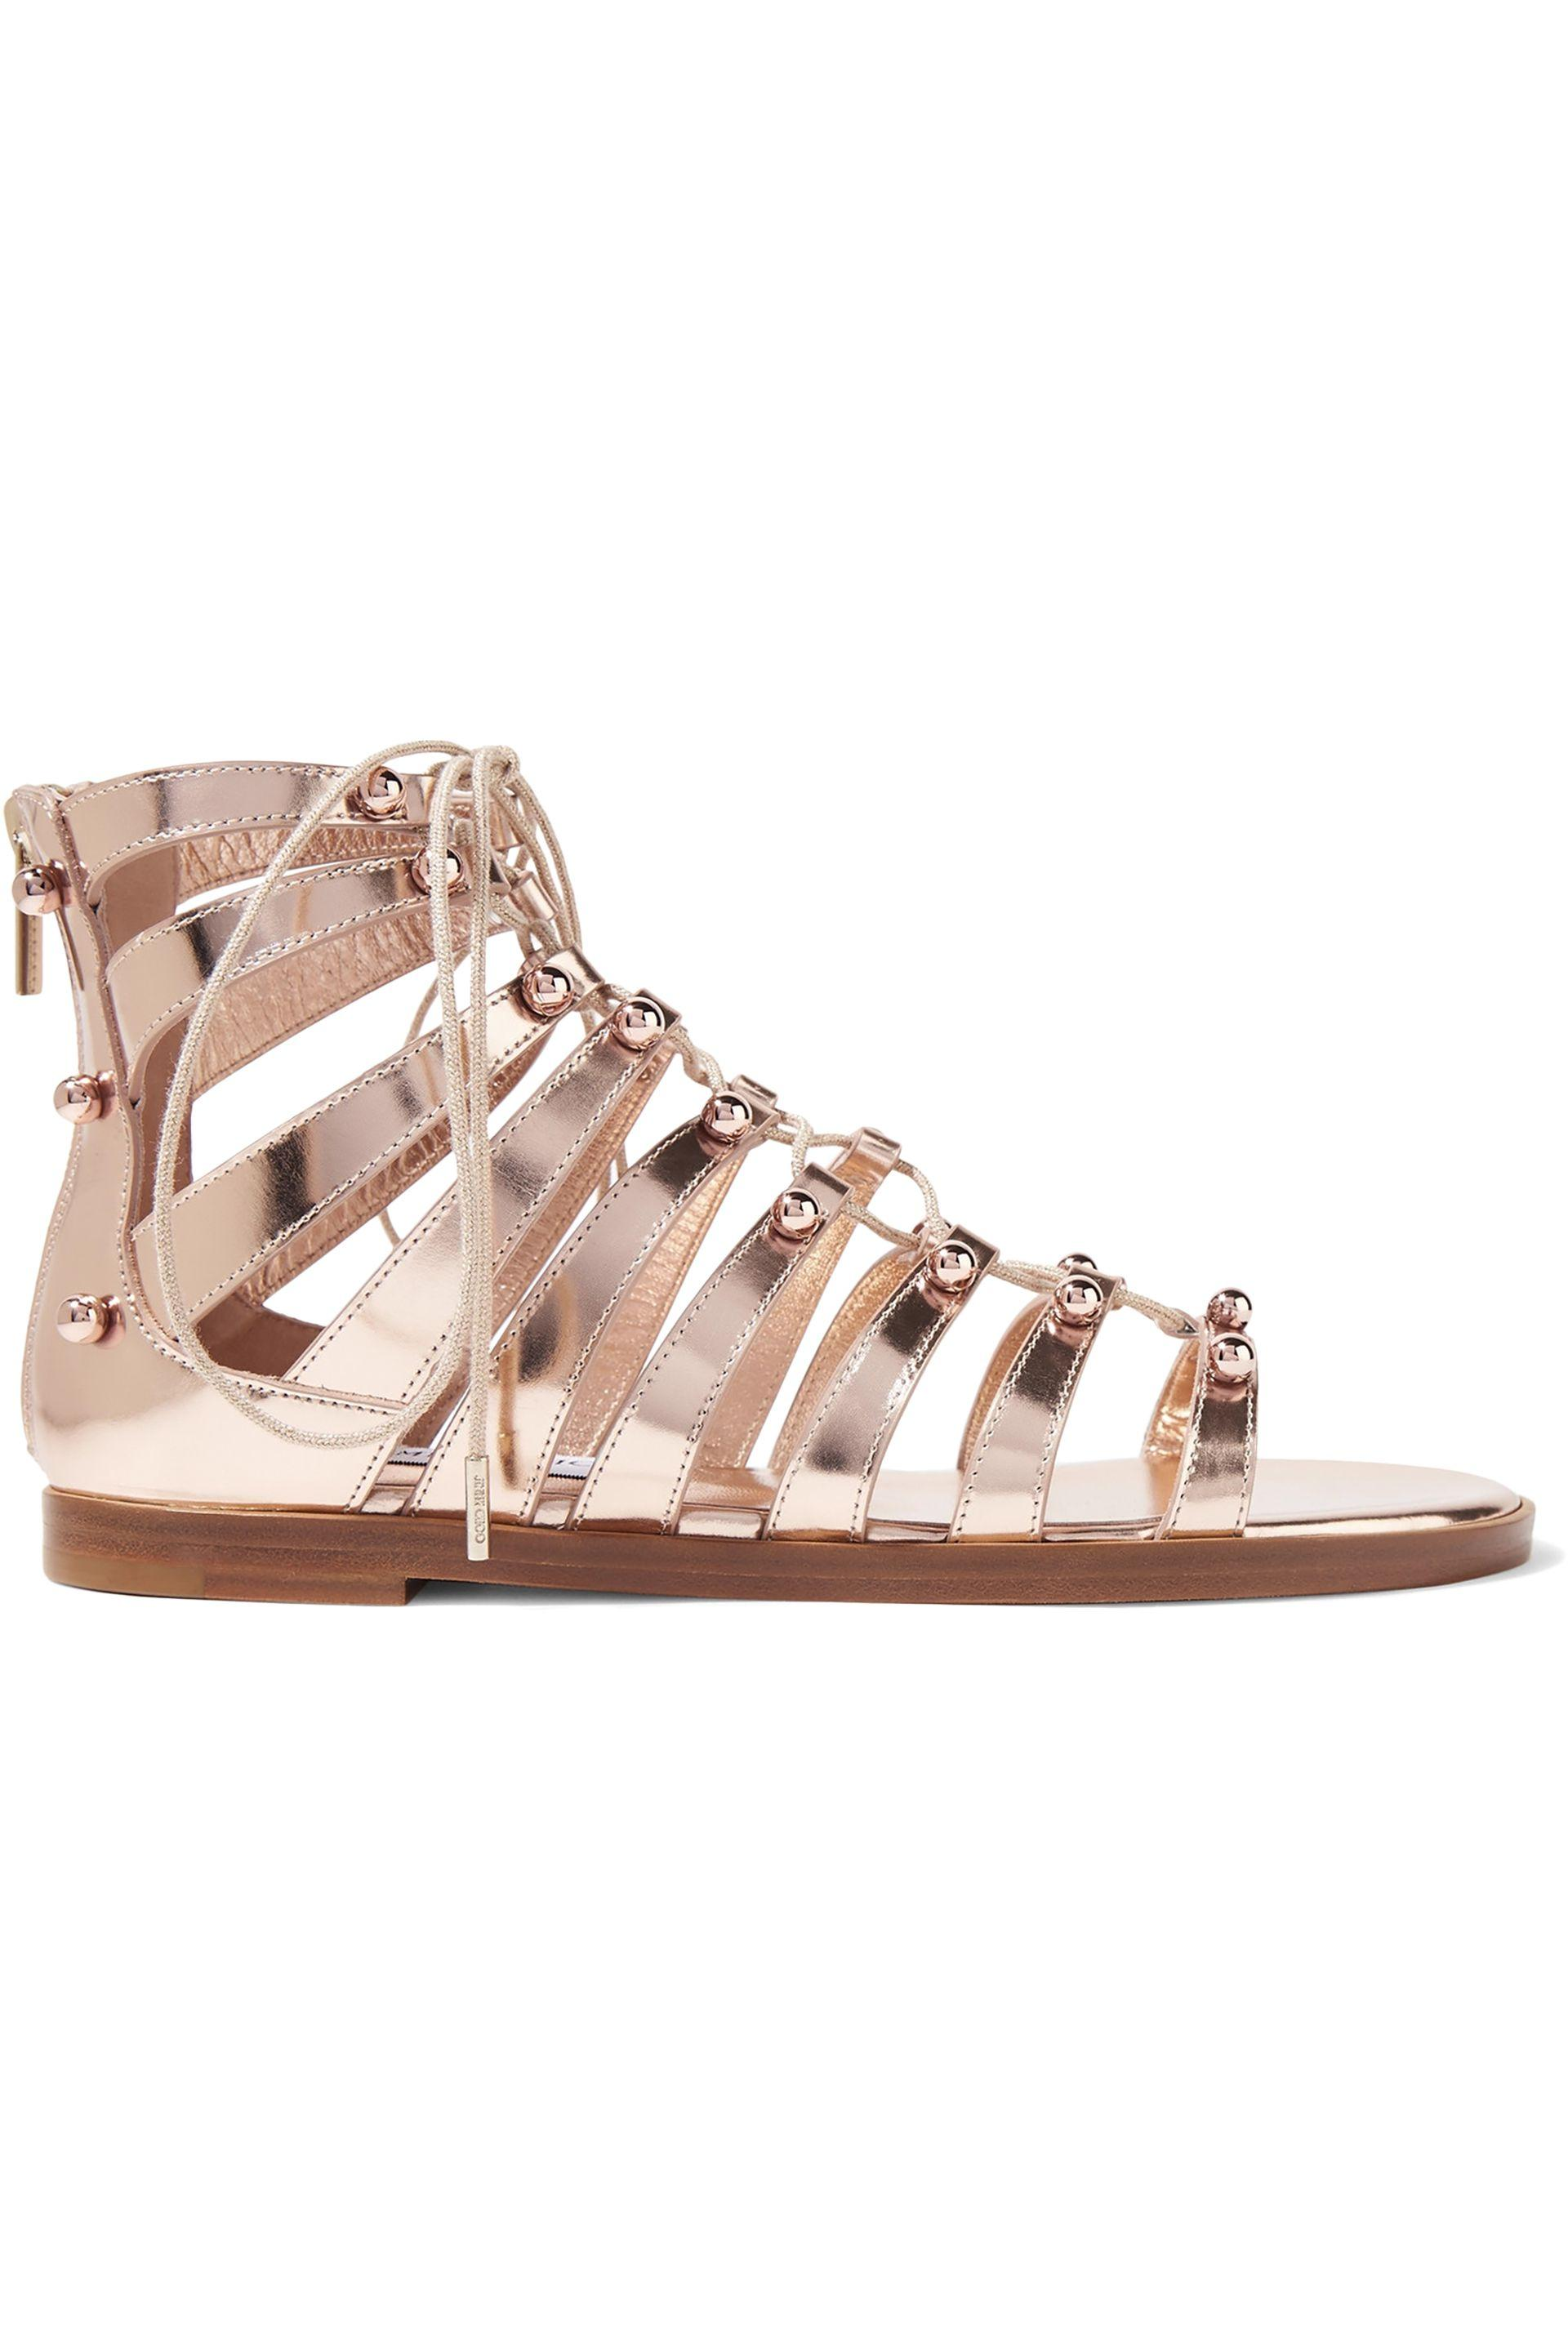 096f8f801a1 Jimmy Choo. Women s Woman Gigi Studded Metallic Leather Sandals Rose Gold